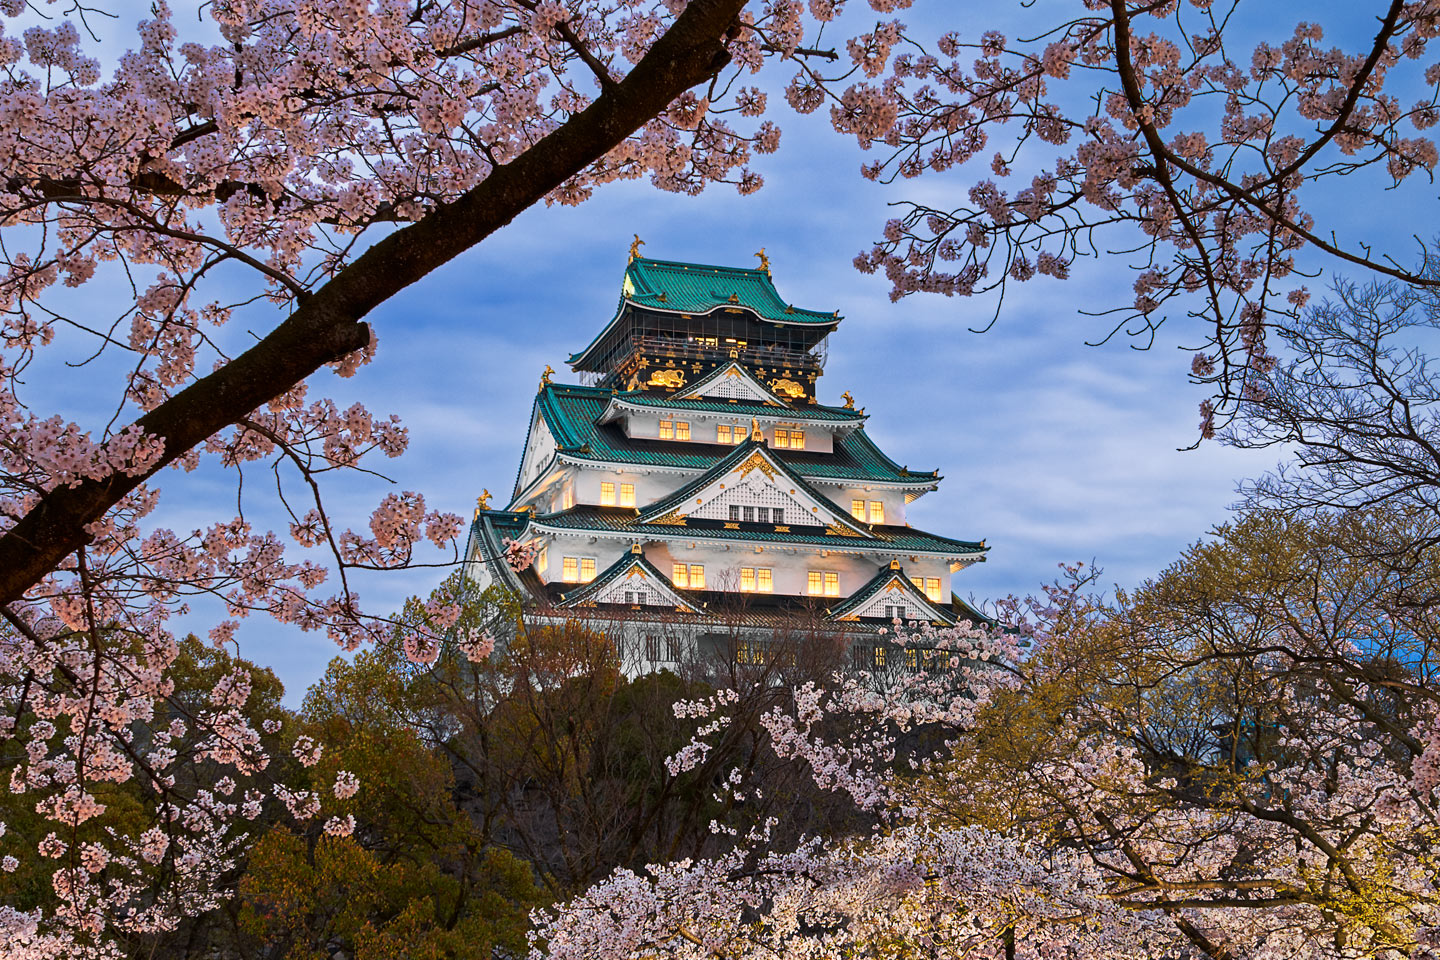 Japan Photo Tour 2016 with Elia Locardi and Naomi Locardi